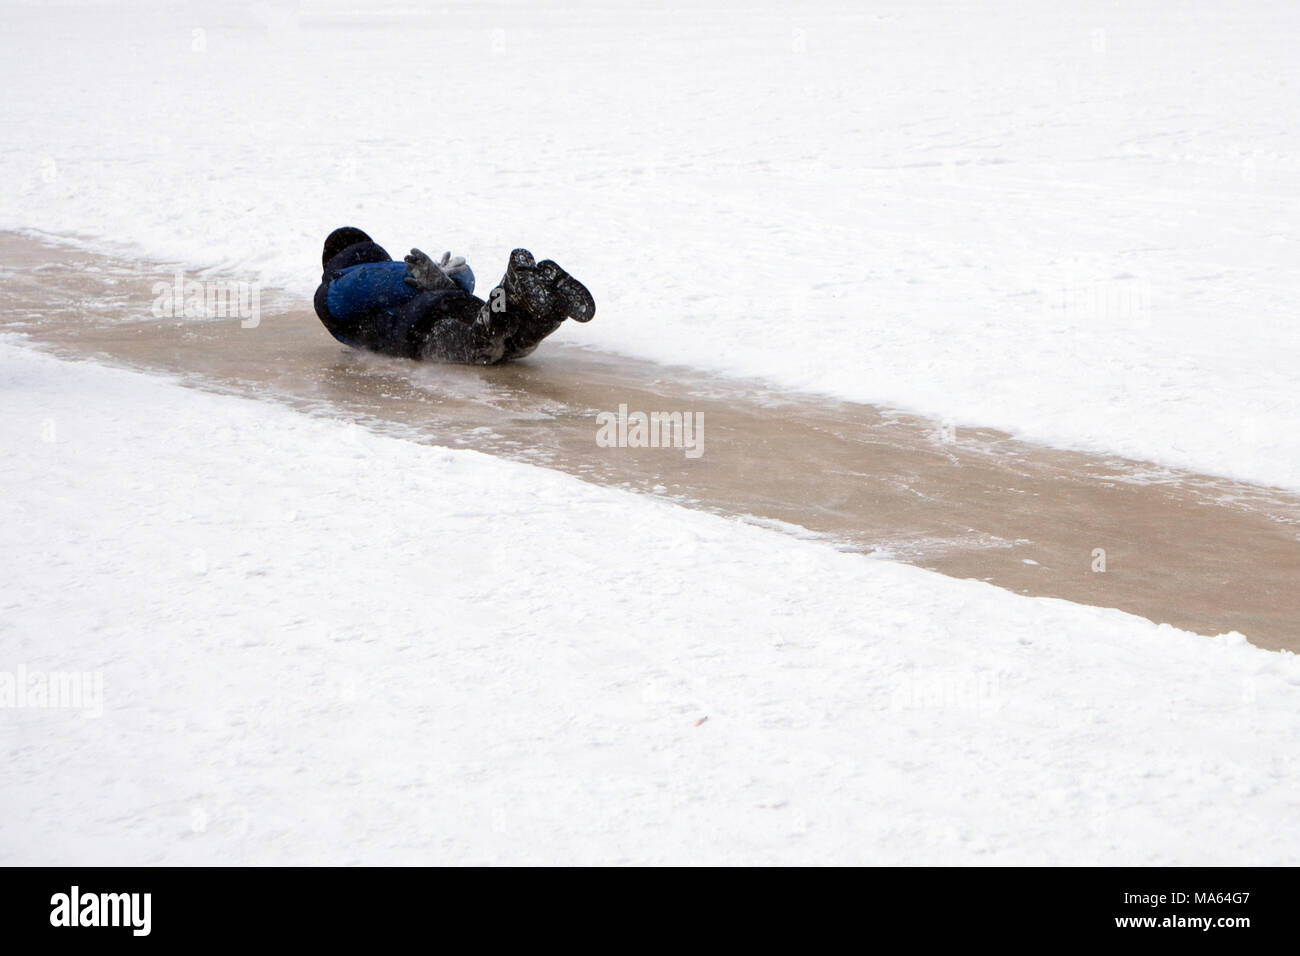 Risk of accidents in winter - A woman slipped on a snow slippery road - Stock Image